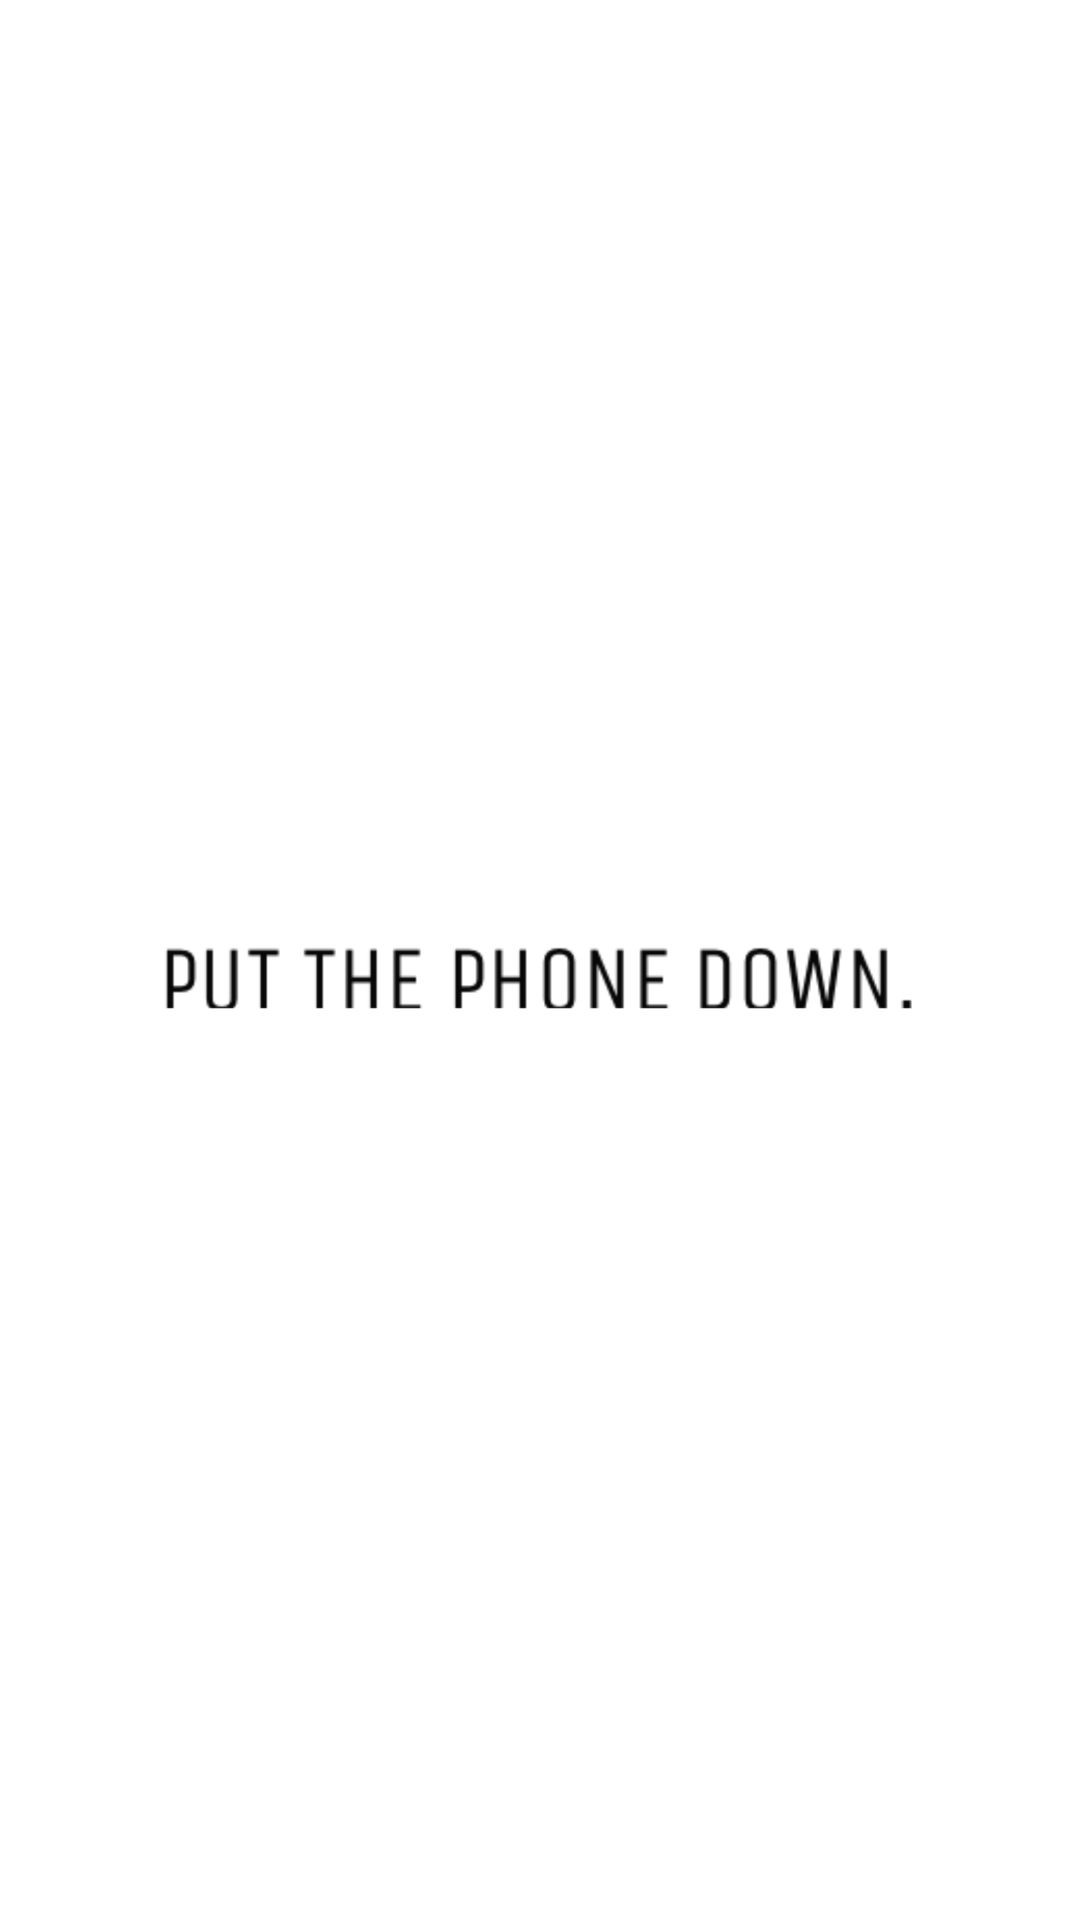 "1084x1927 Letter J iPhone Wallpaper Fresh Free Minimal Phone Wallpaper ""put the Phone  Down """